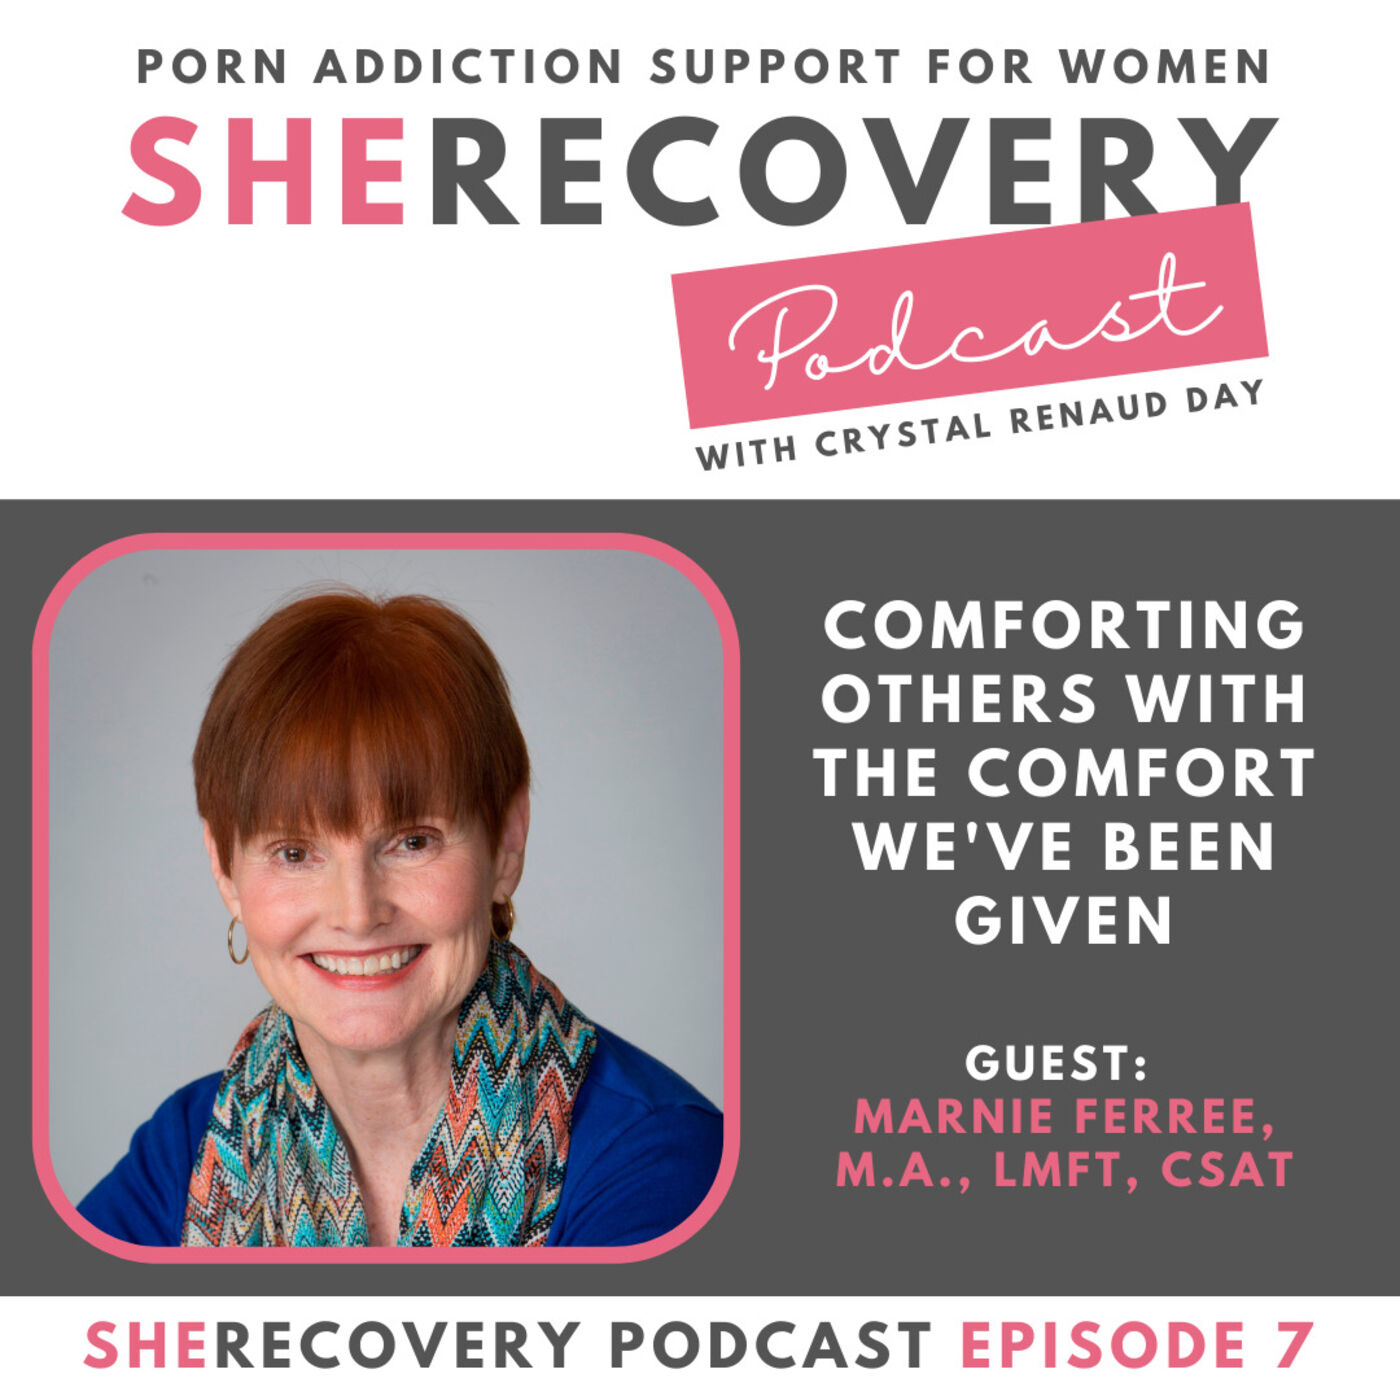 S1 E7: Marnie Ferree - Comforting Others with the Comfort We've Been Given